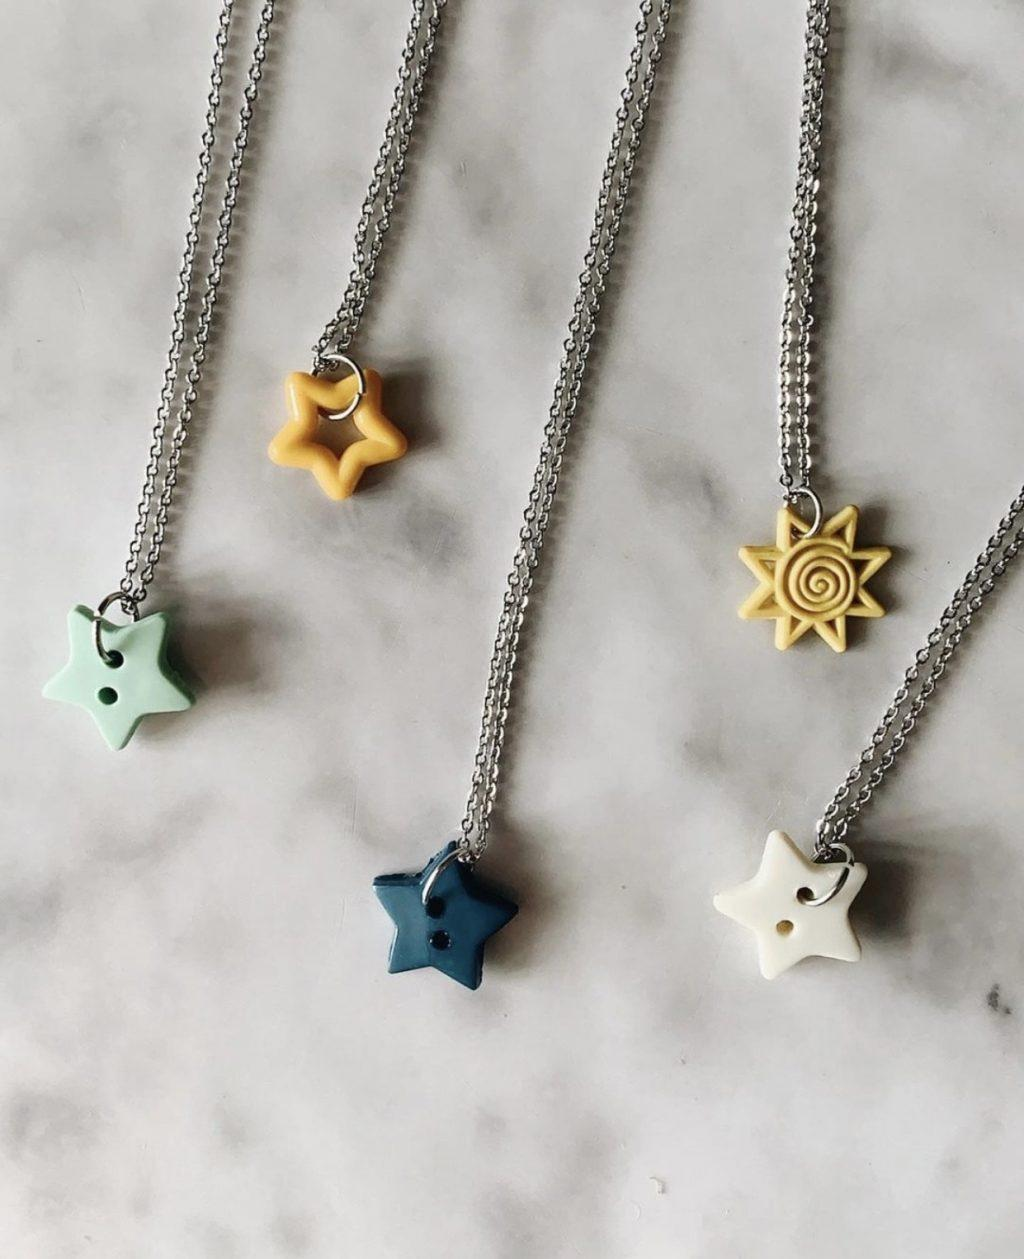 Tyler's newest necklaces include star and sun repurposed button charms, featured on her Etsy since December. Tyler said many Pepperdine students and friends have supported her business, and she is excited to watch it blossom.